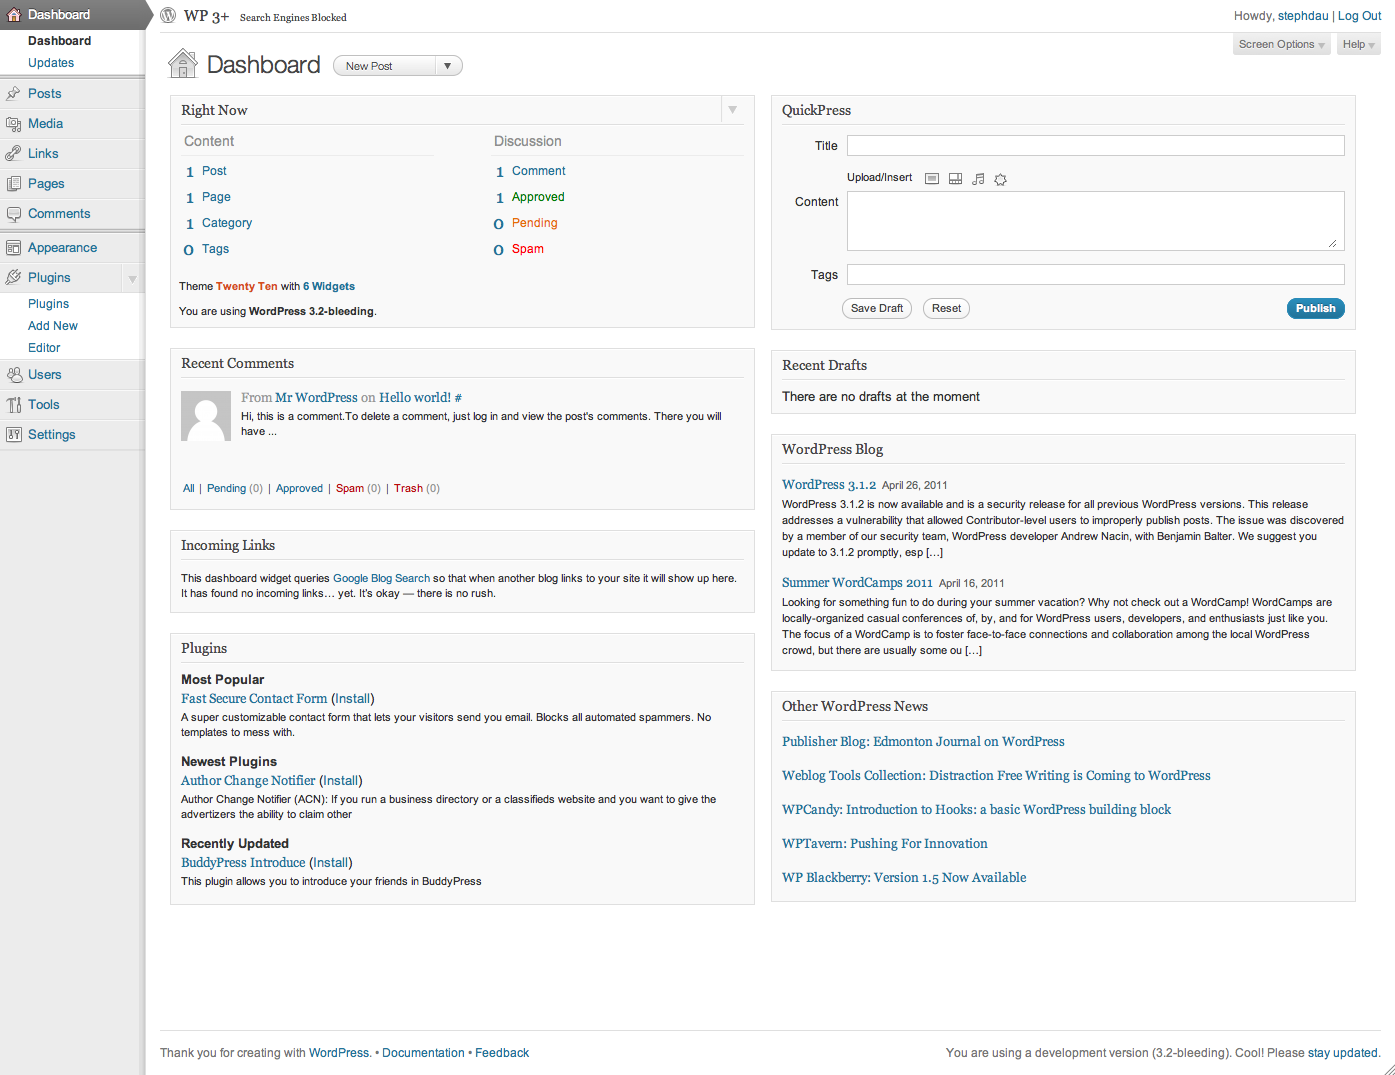 WordPress 3.2 превью